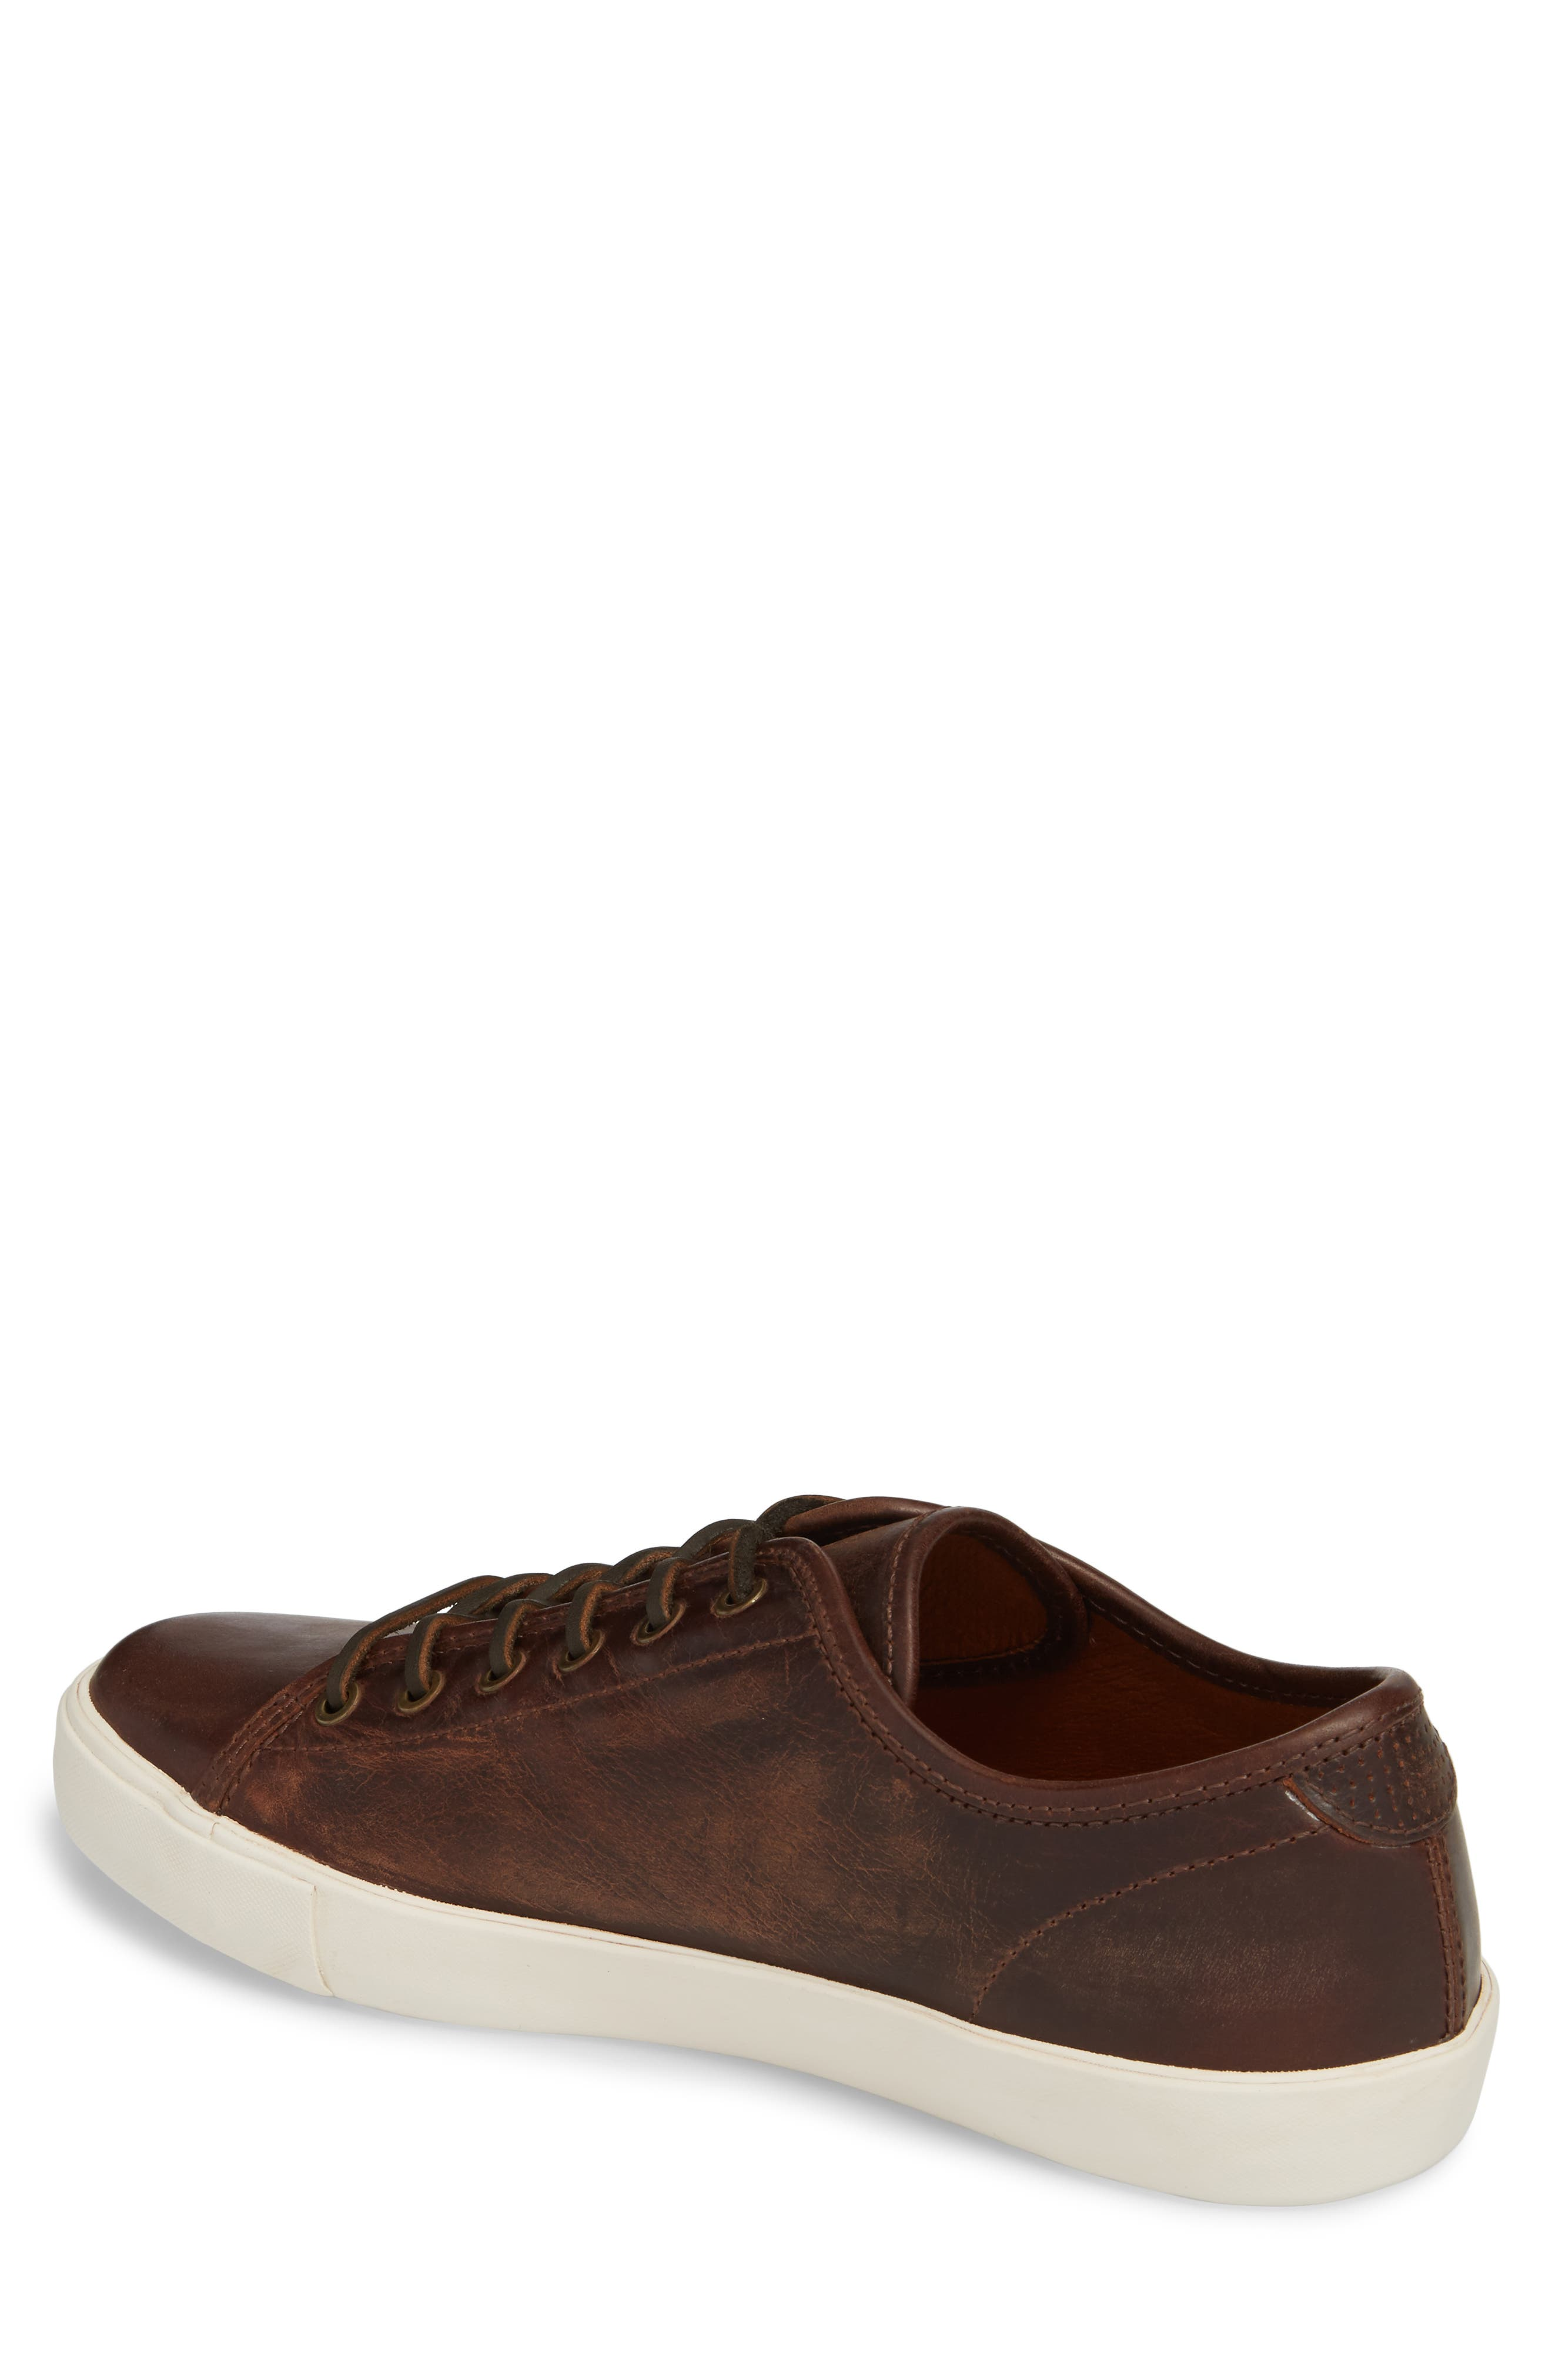 Brett Sneaker,                             Alternate thumbnail 2, color,                             REDWOOD LEATHER